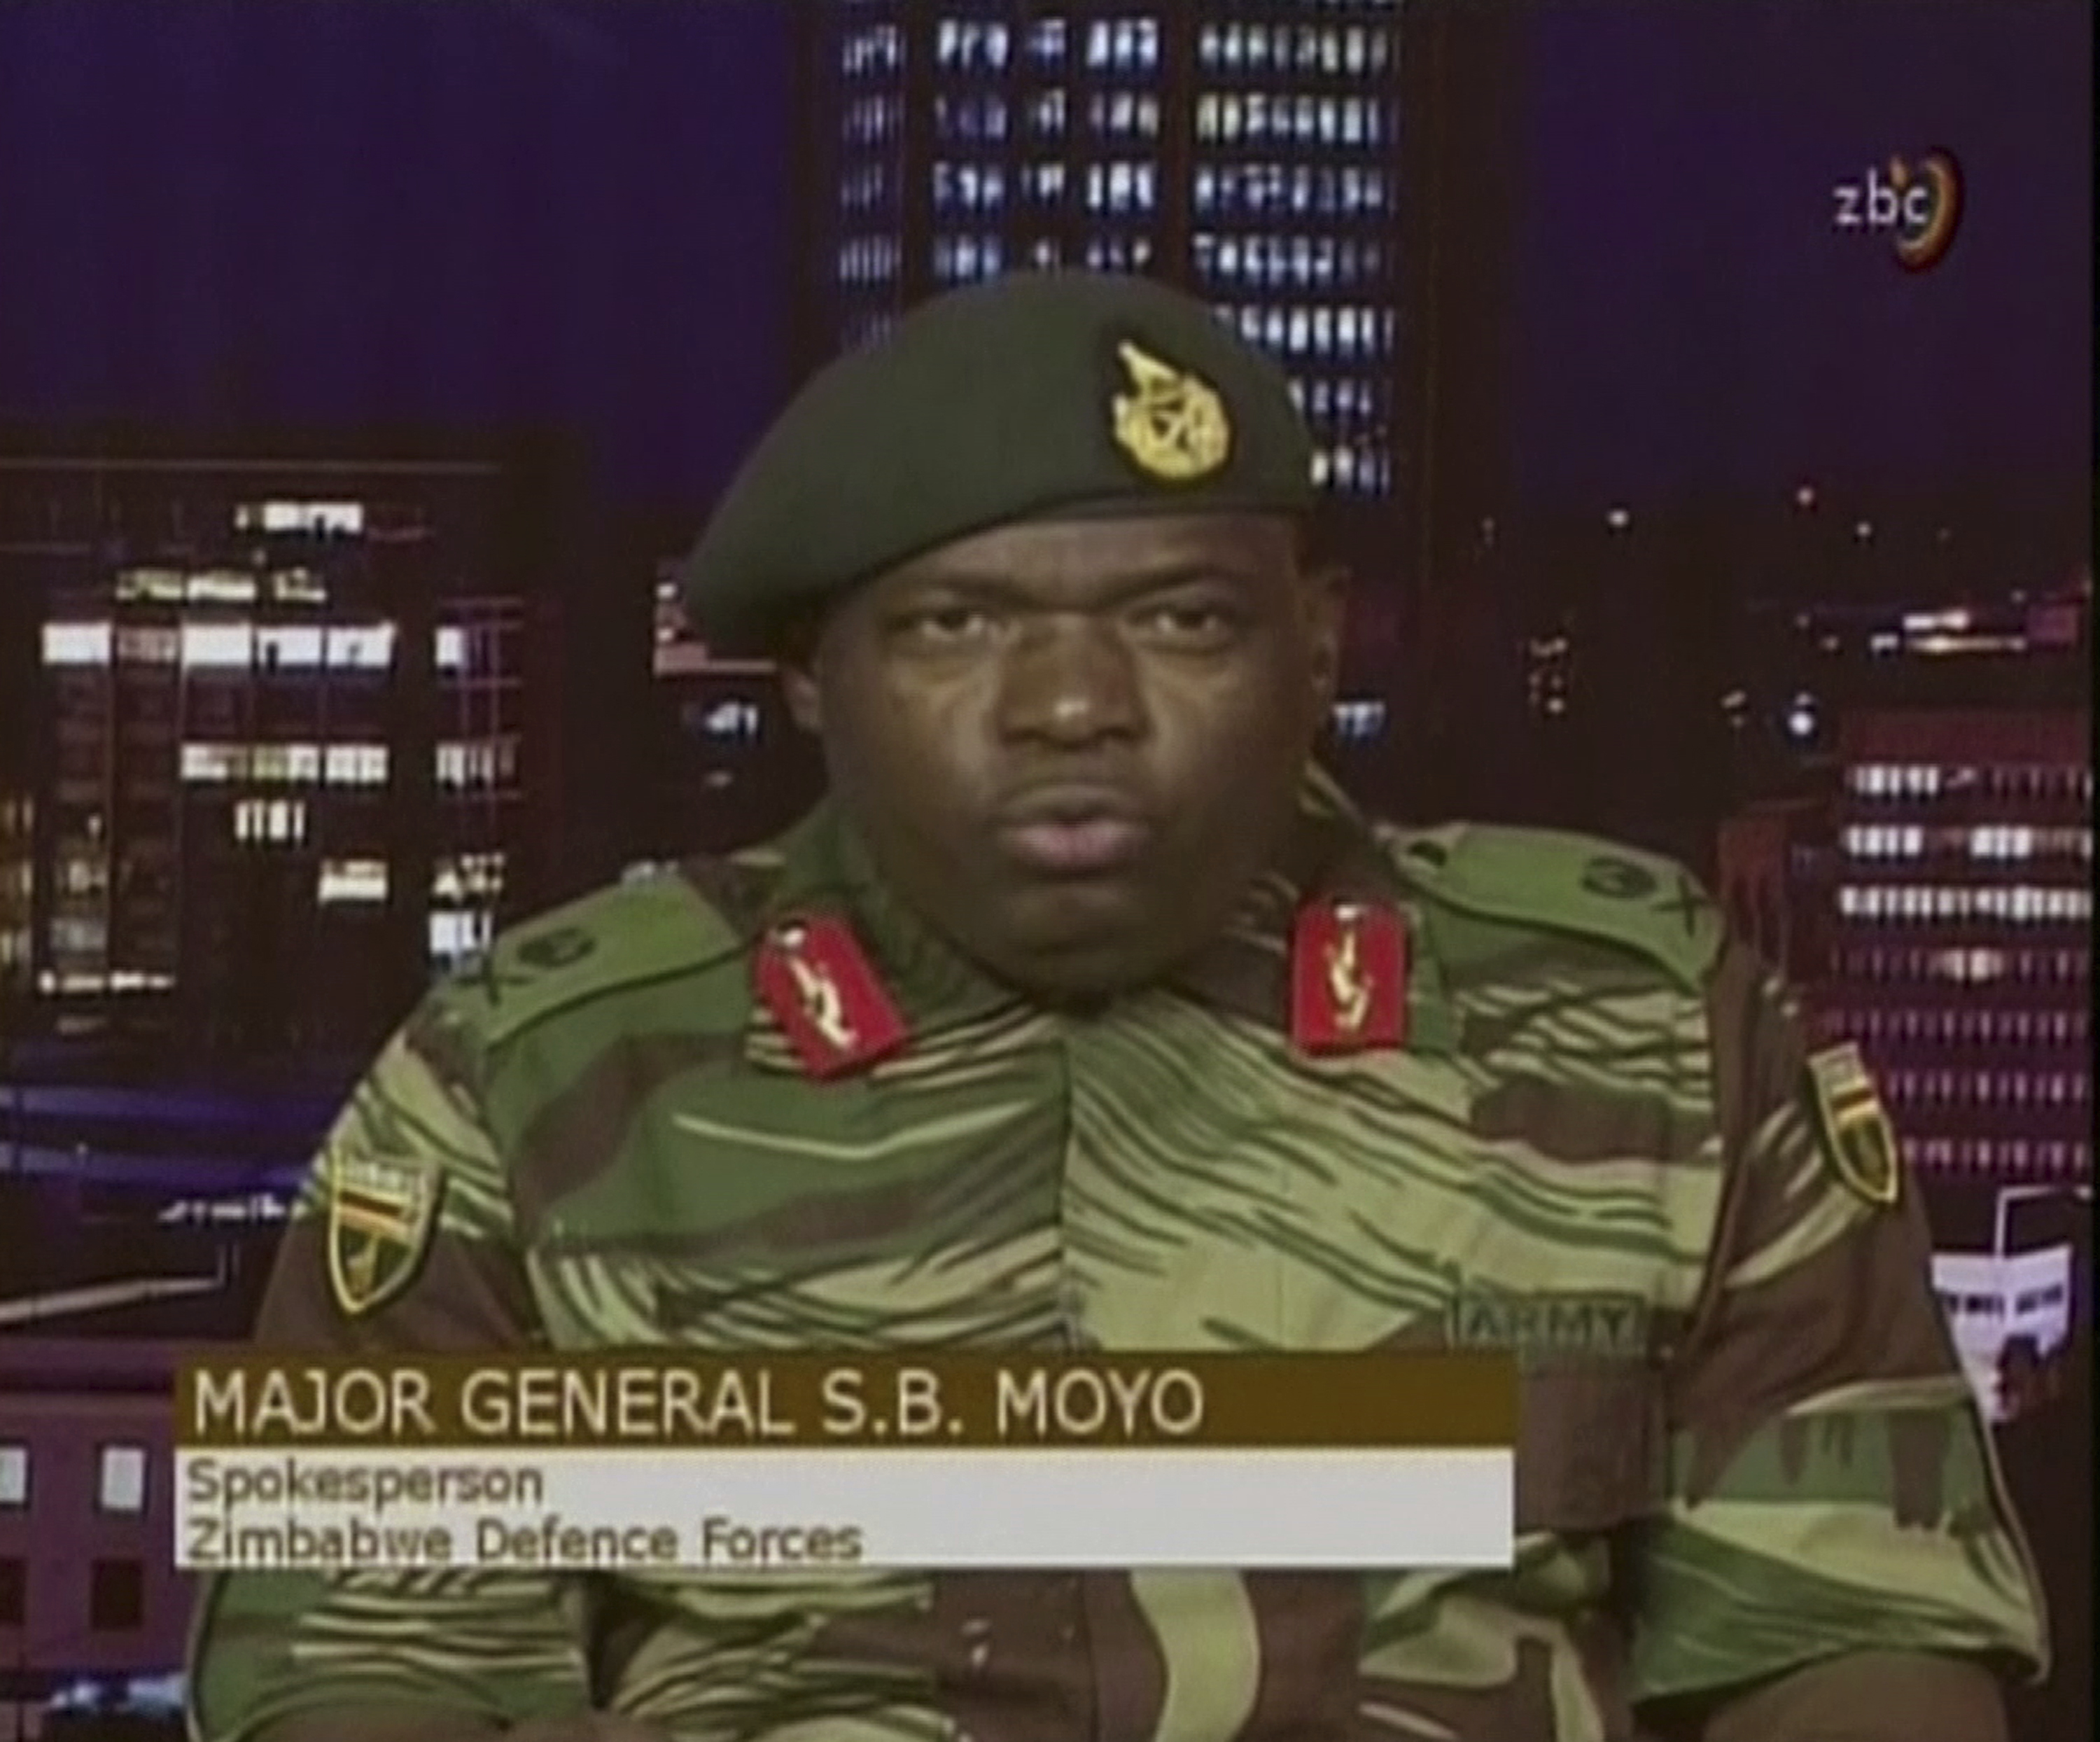 In this image made from video, Major Gen. S.B. Moyo, Spokesperson for the Zimbabwe Defense Forces addresses to the nation in Harare, Zimbabwe, Nov. 15, 2017.